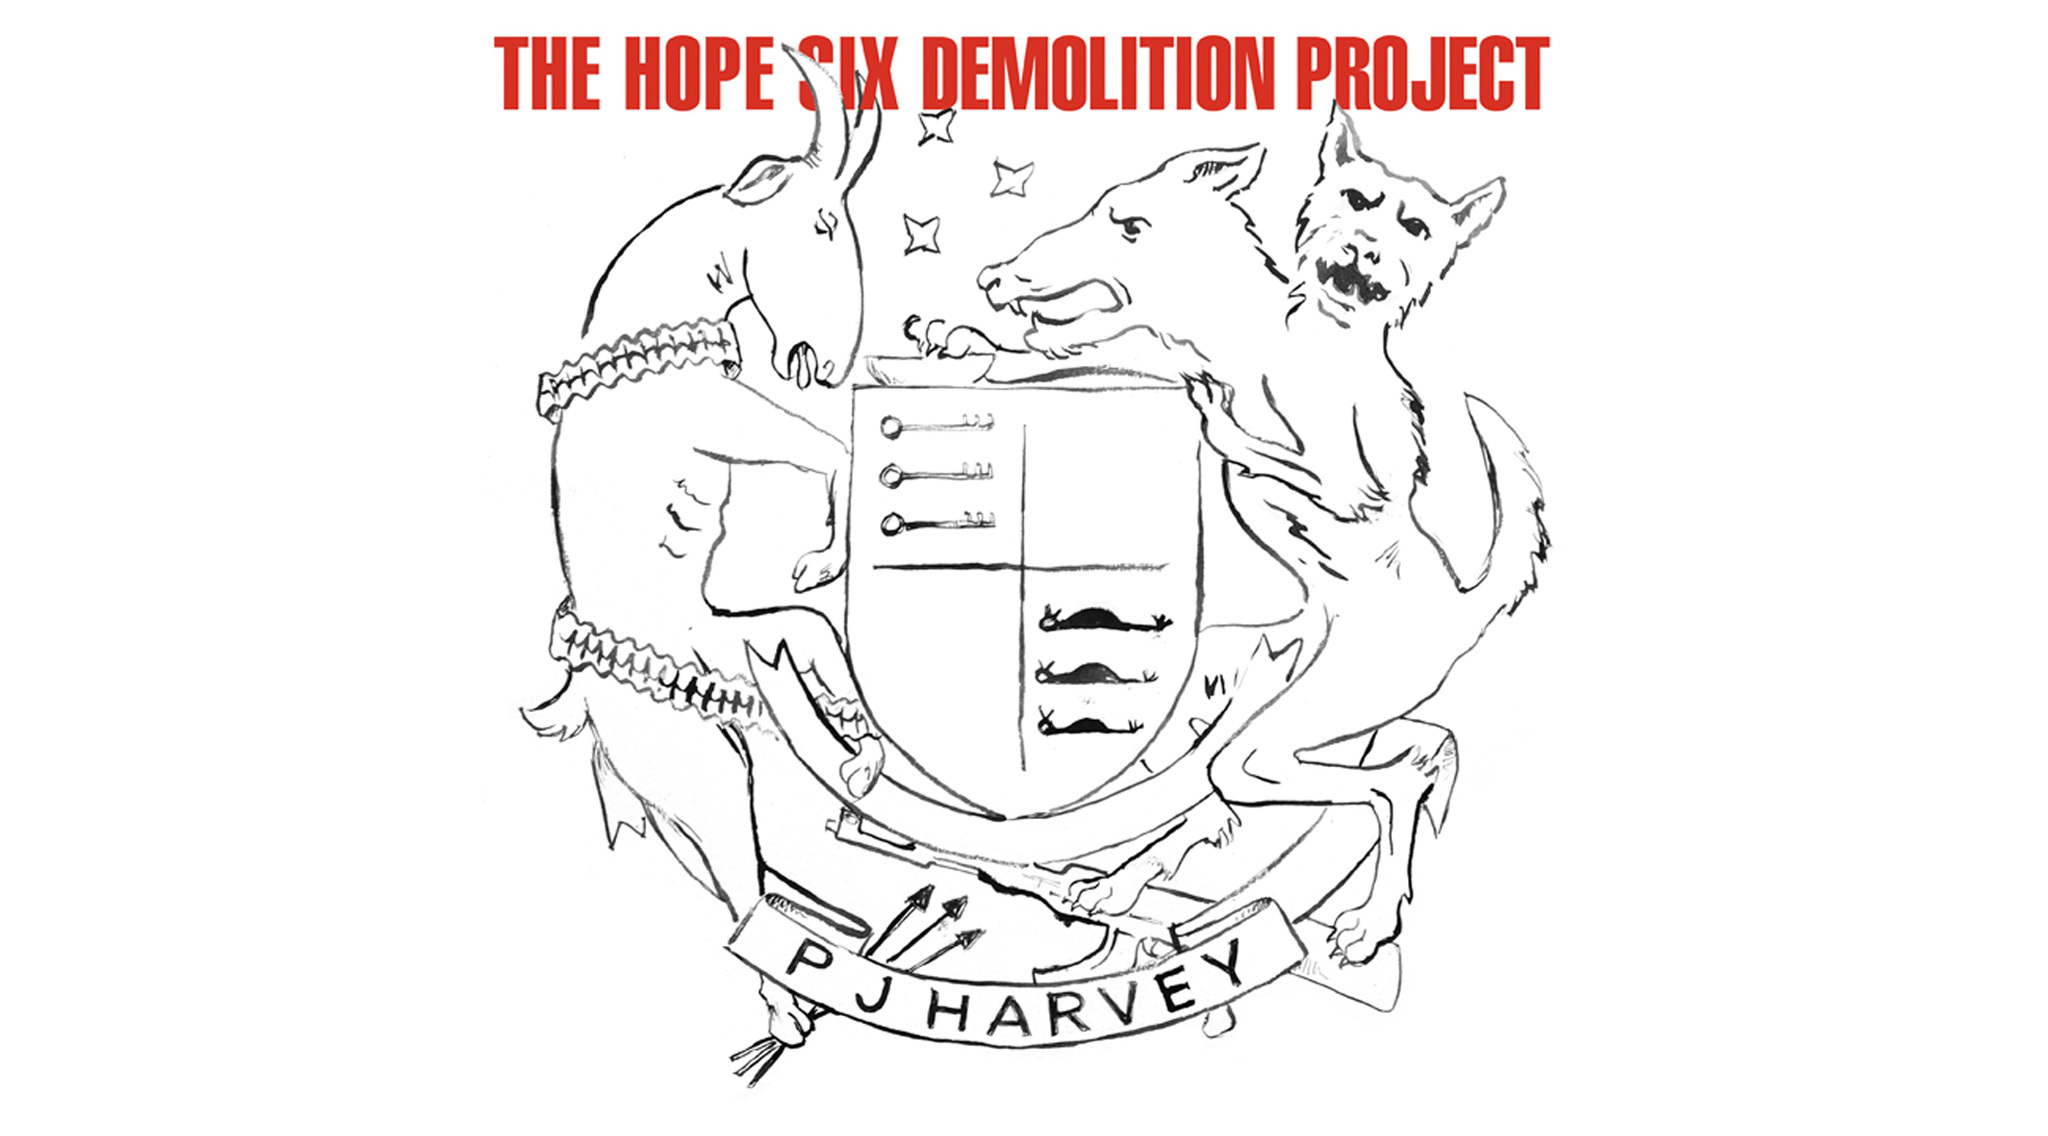 PJ Harvey – 'The Hope Six Demolition Project' album review